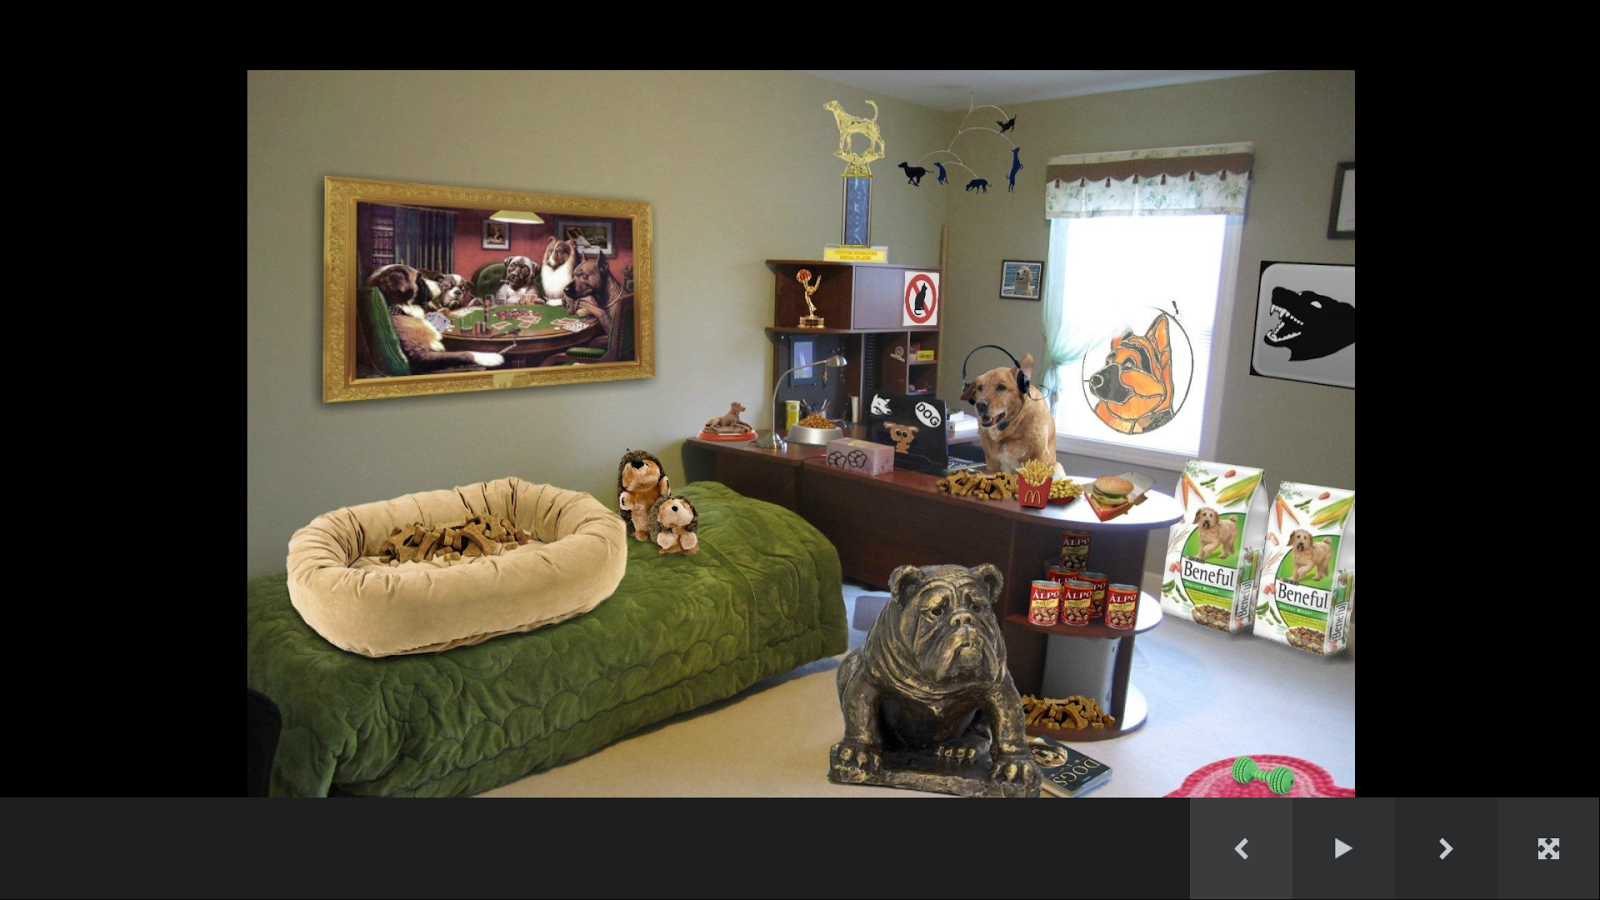 Dog room decor android apps on google play Home decorating room ideas